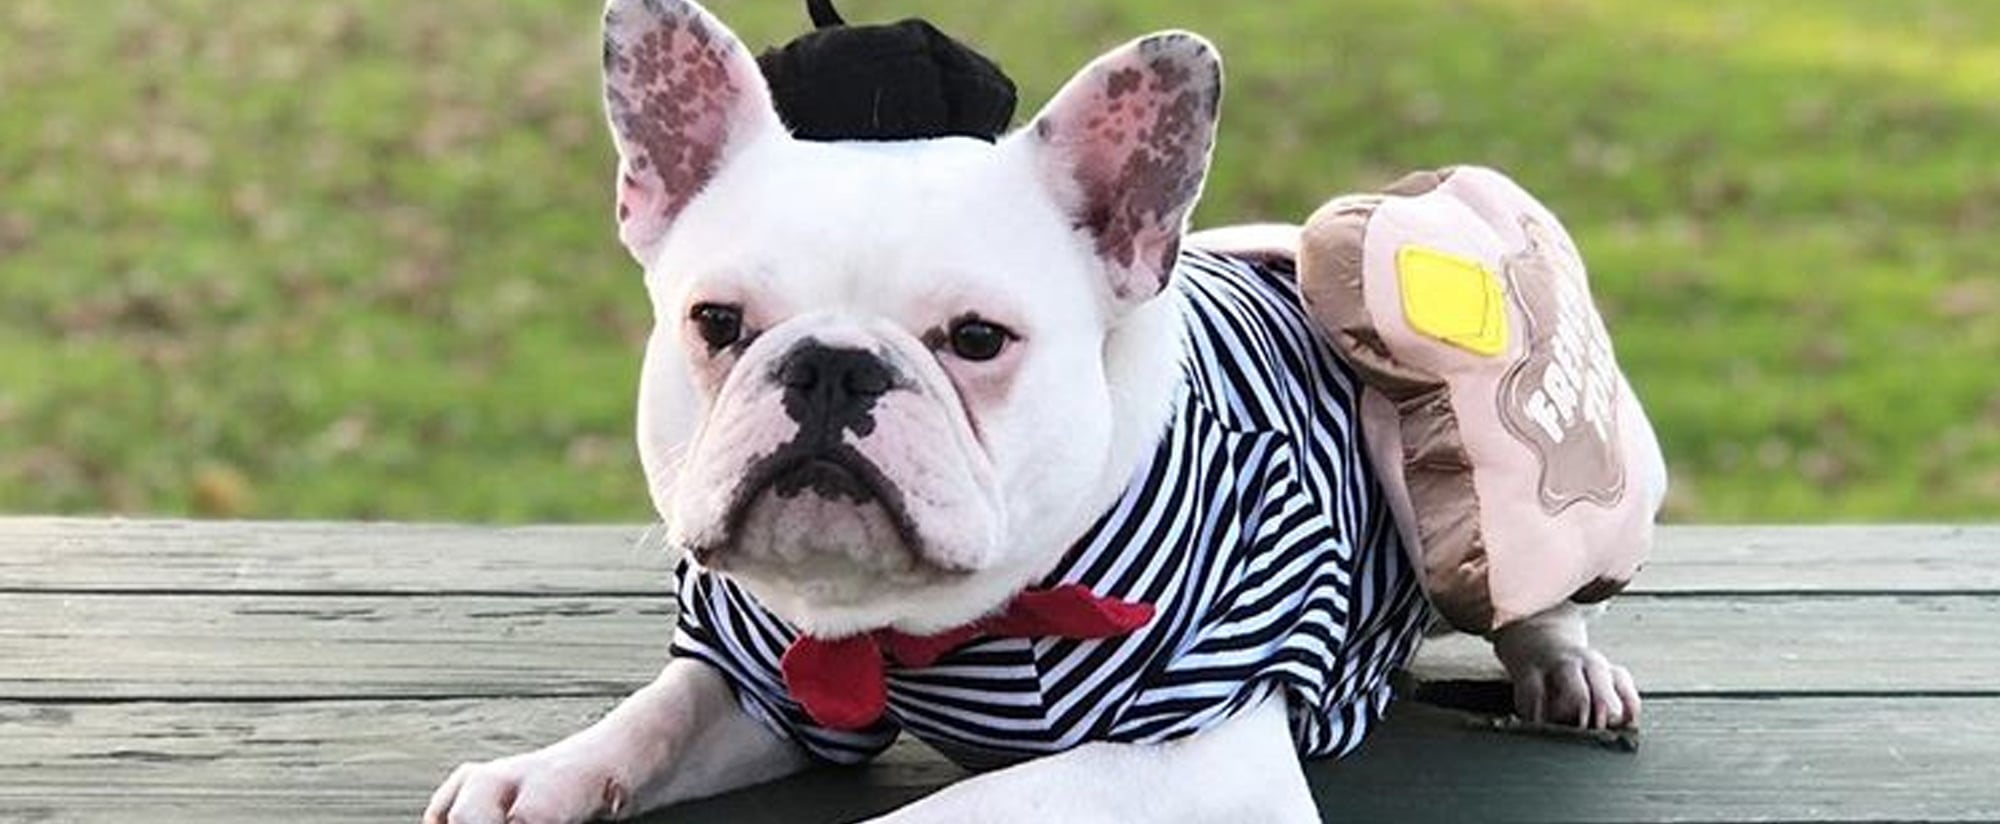 Photos Of French Bulldogs In Halloween Costumes Popsugar Pets